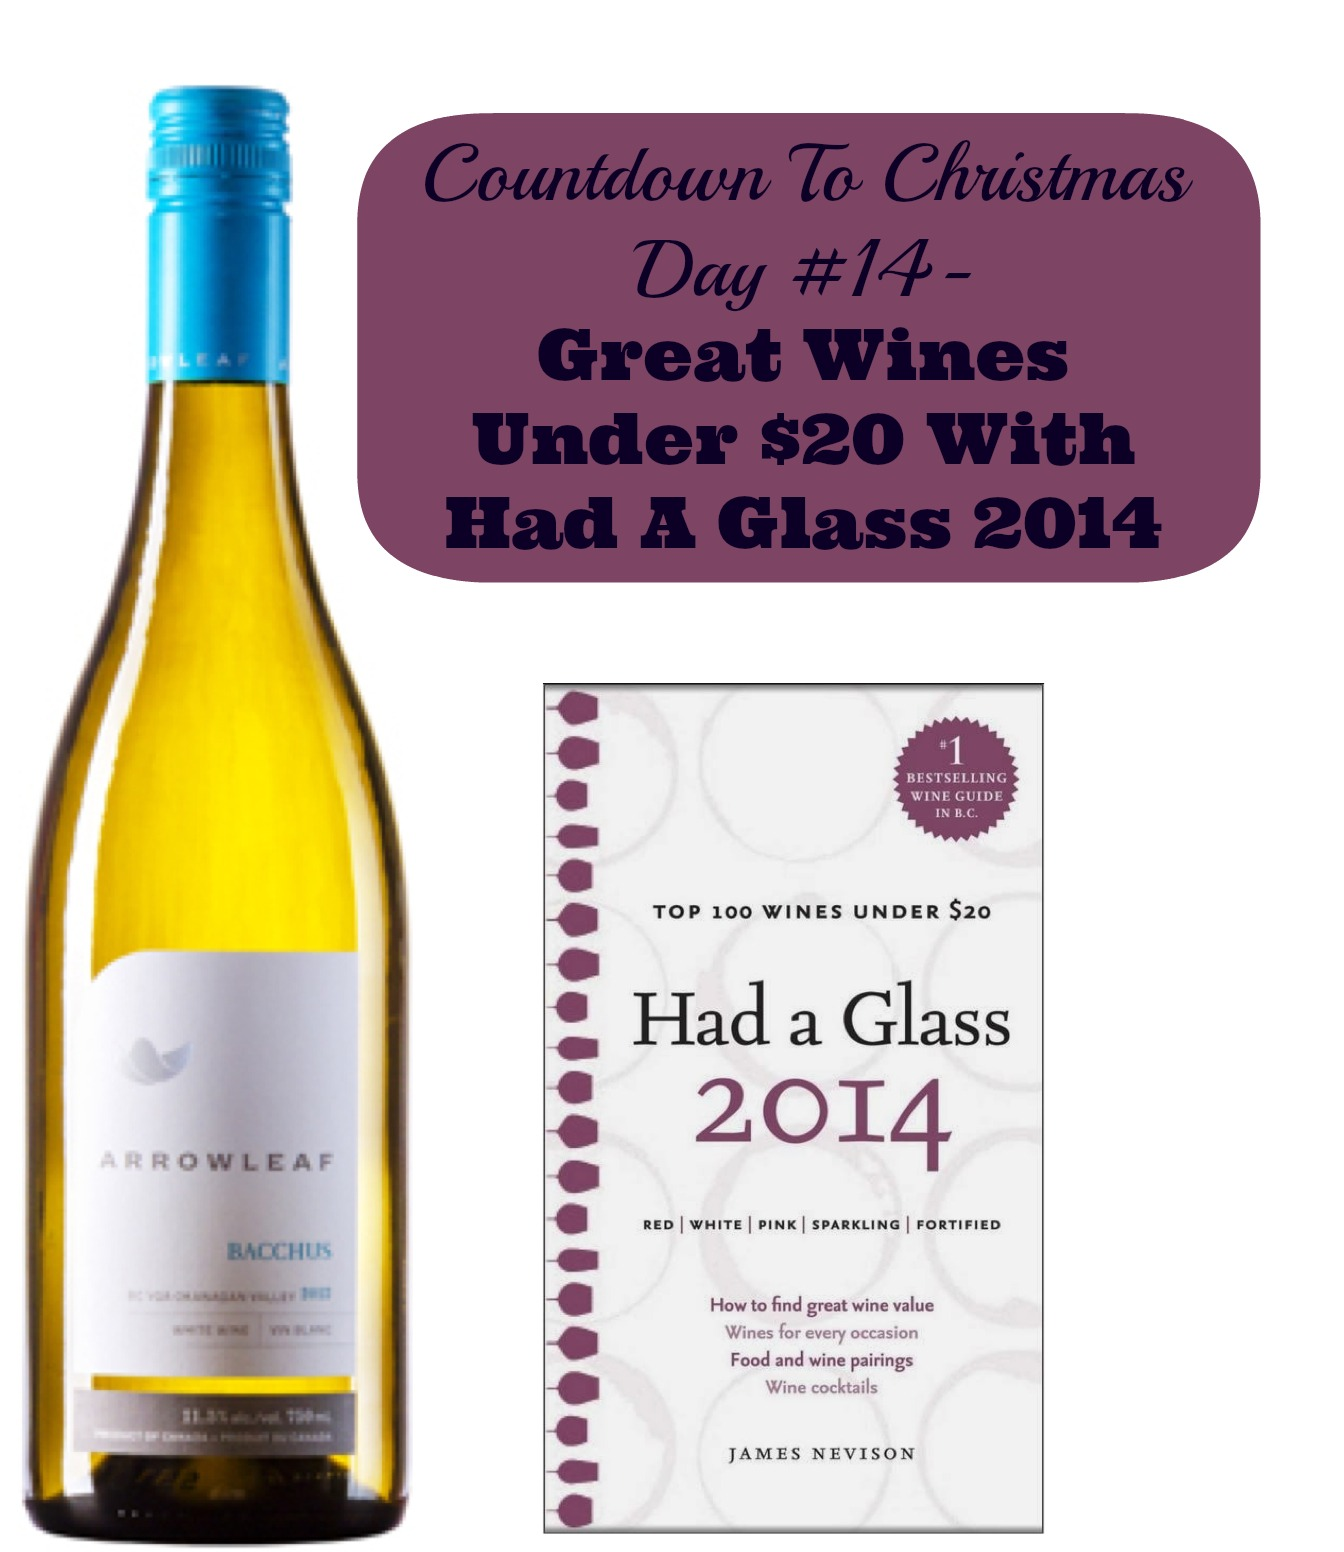 Countdown To Christmas Day 14- Great Wines Under $20 from Had A Glass 2014 (